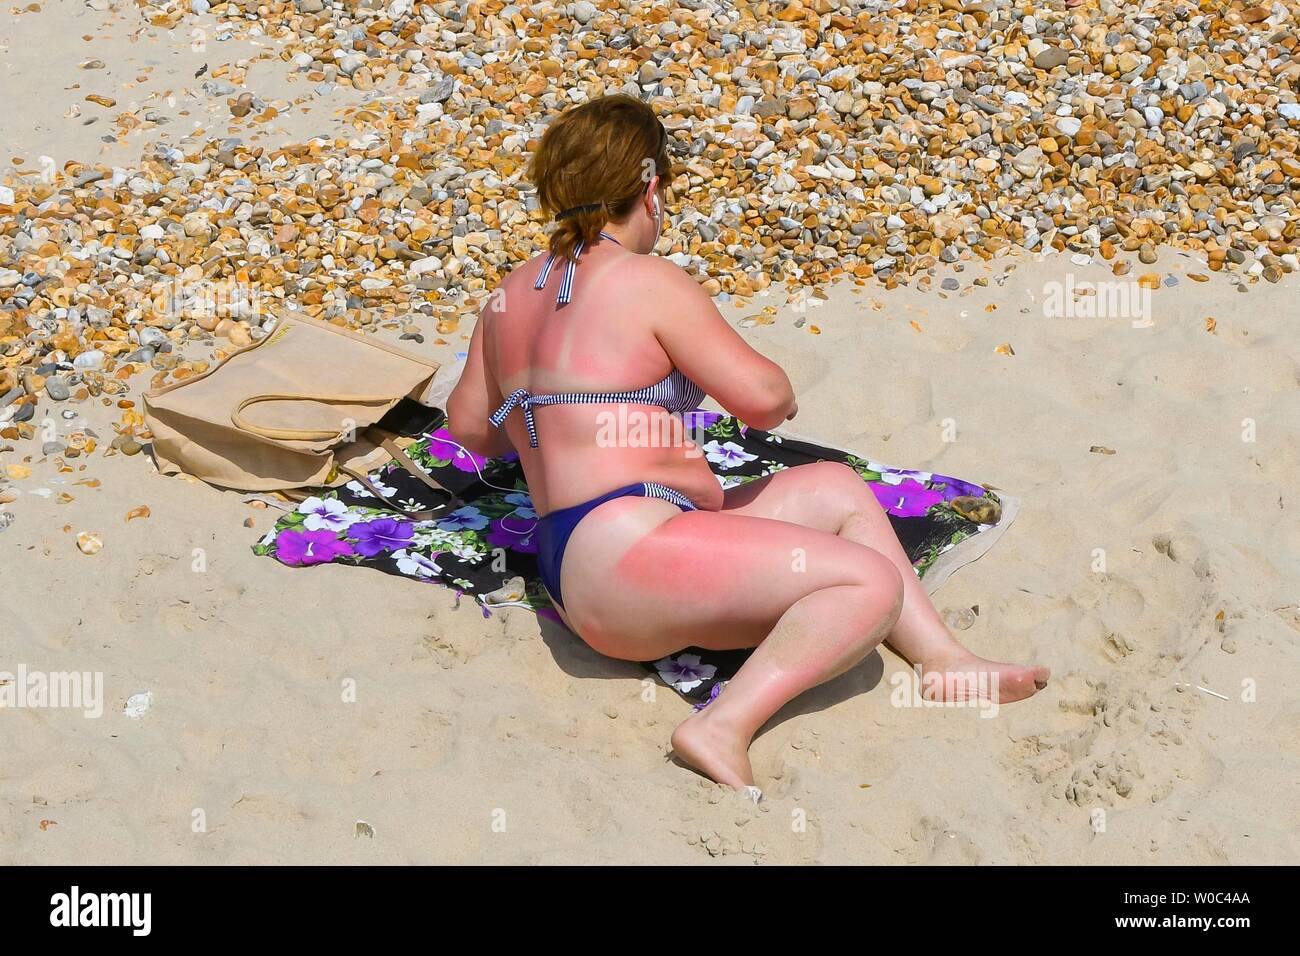 Lyme Regis, Dorset, UK.  27th June 2019. UK Weather.  A woman shows signs of sunburn as she lies on the beach at the seaside resort of Lyme Regis in Dorset enjoying a day of clear blue skies and scorching sunshine.   Picture Credit: Graham Hunt/Alamy Live News Stock Photo